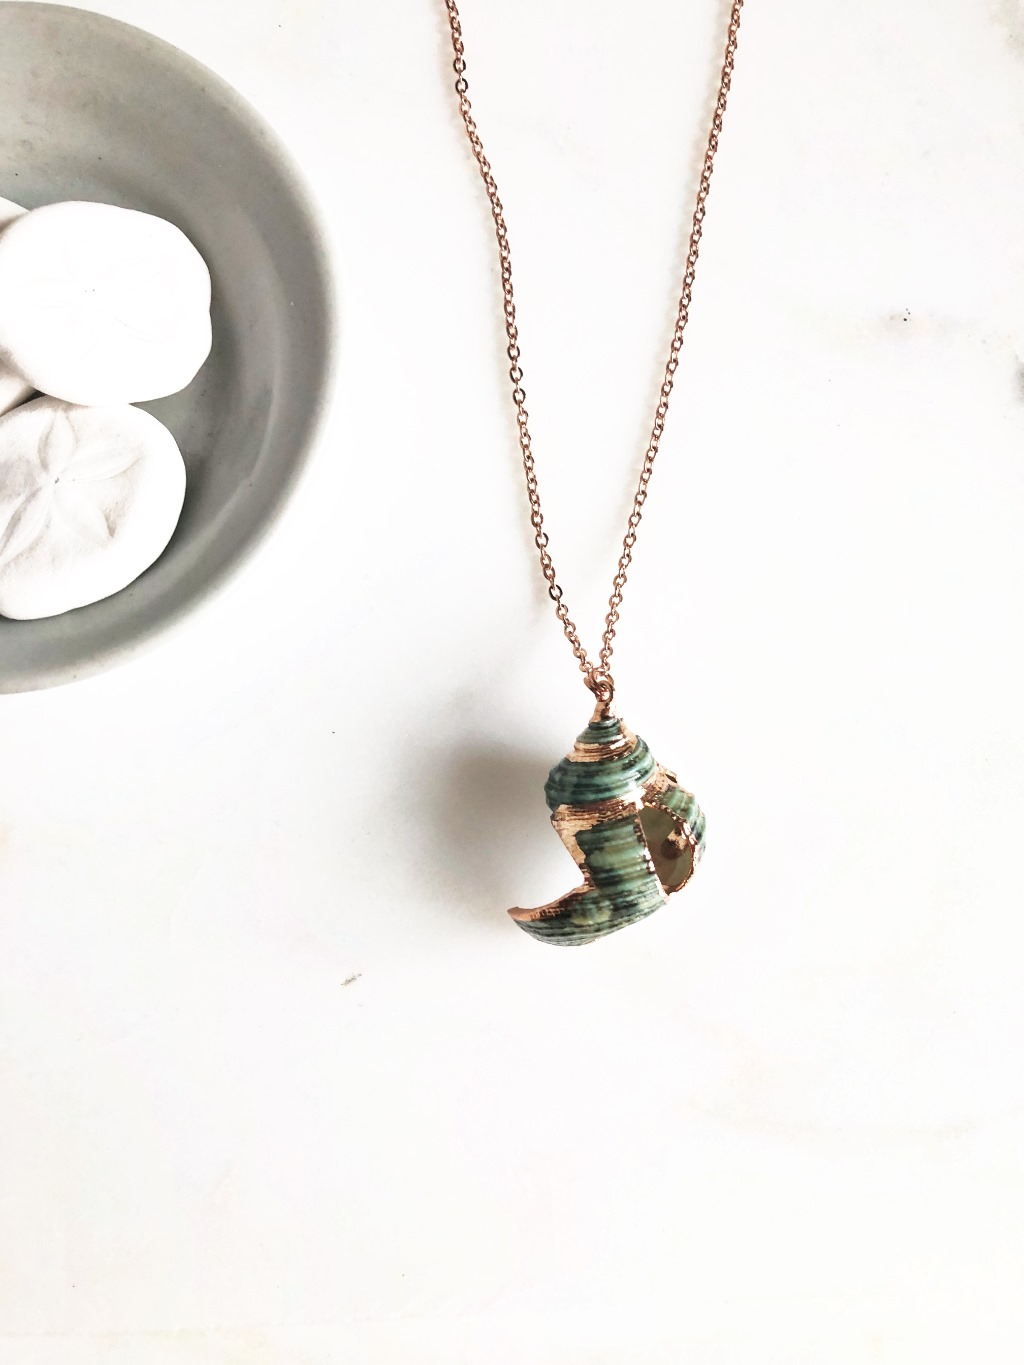 Gorgeous green seashell necklace with rose gold accents, perfect for a beach inspired wedding!